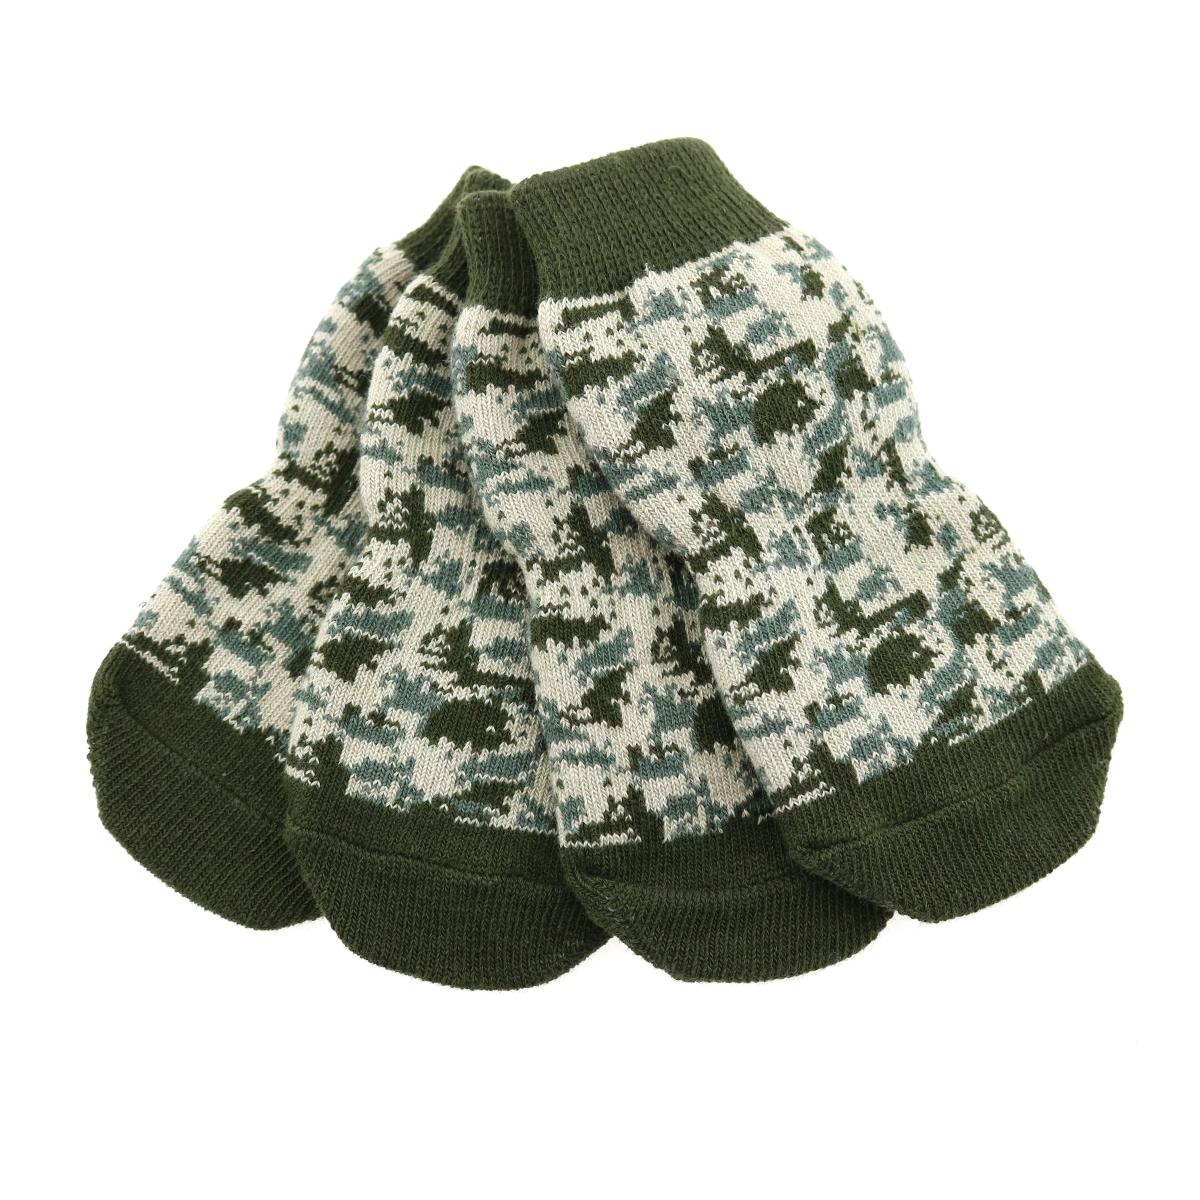 Non-Skid Dog Socks by Doggie Design - Green Camo